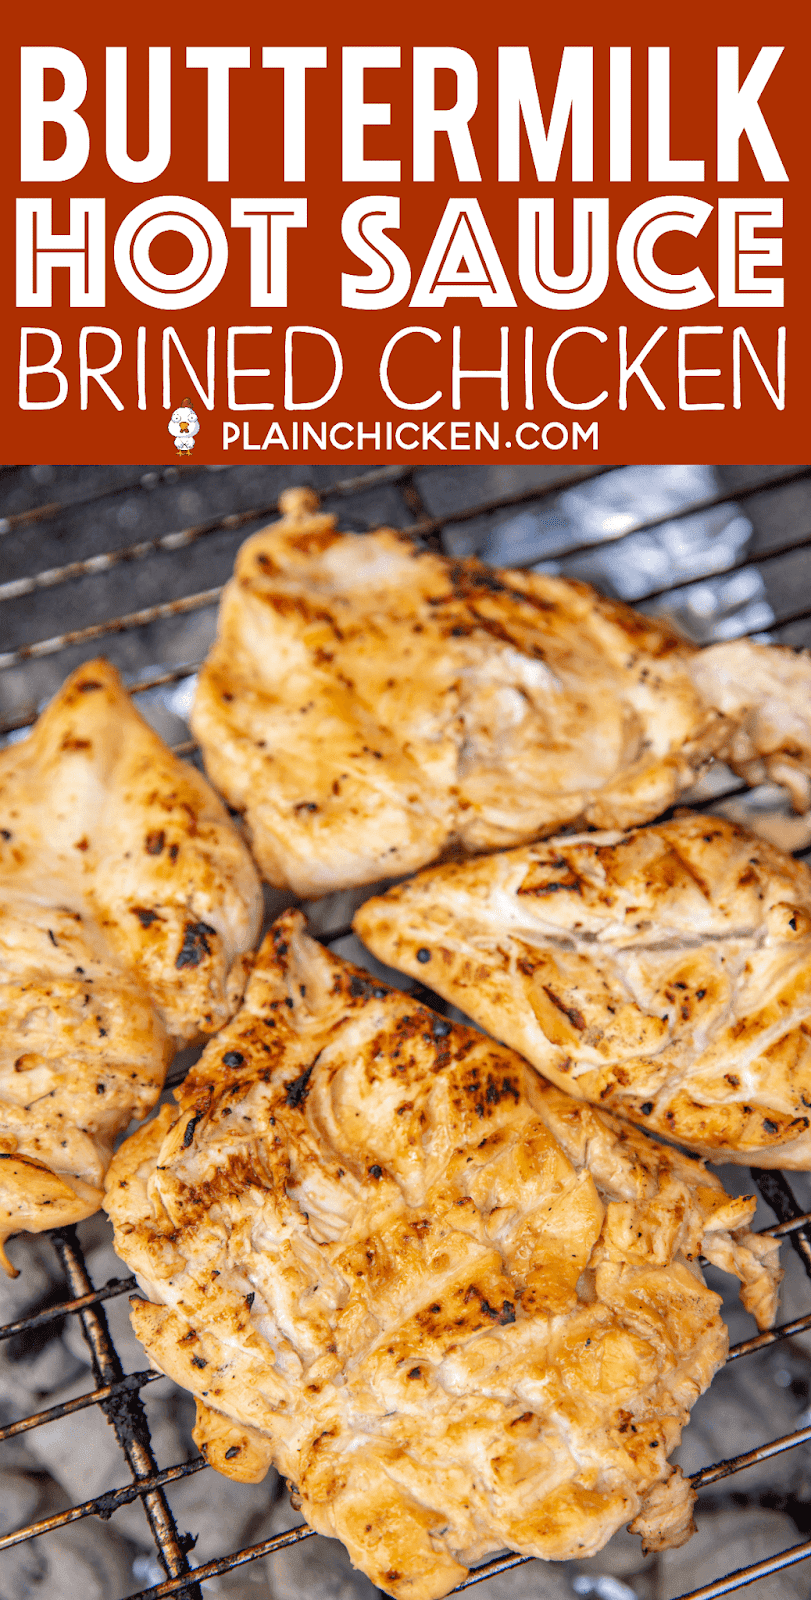 Buttermilk Hot Sauce Brined Chicken - seriously the most tender and juicy chicken we've ever made!!! Chicken marinaded overnight in buttermilk, water, salt, pepper, garlic, lime, brown sugar and hot sauce. Brush the chicken with some BBQ sauce before taking off the grill. We LOVED this chicken! We always double the recipe and never have leftovers! YUM! #chicken #grill #grilledchicken #marinade